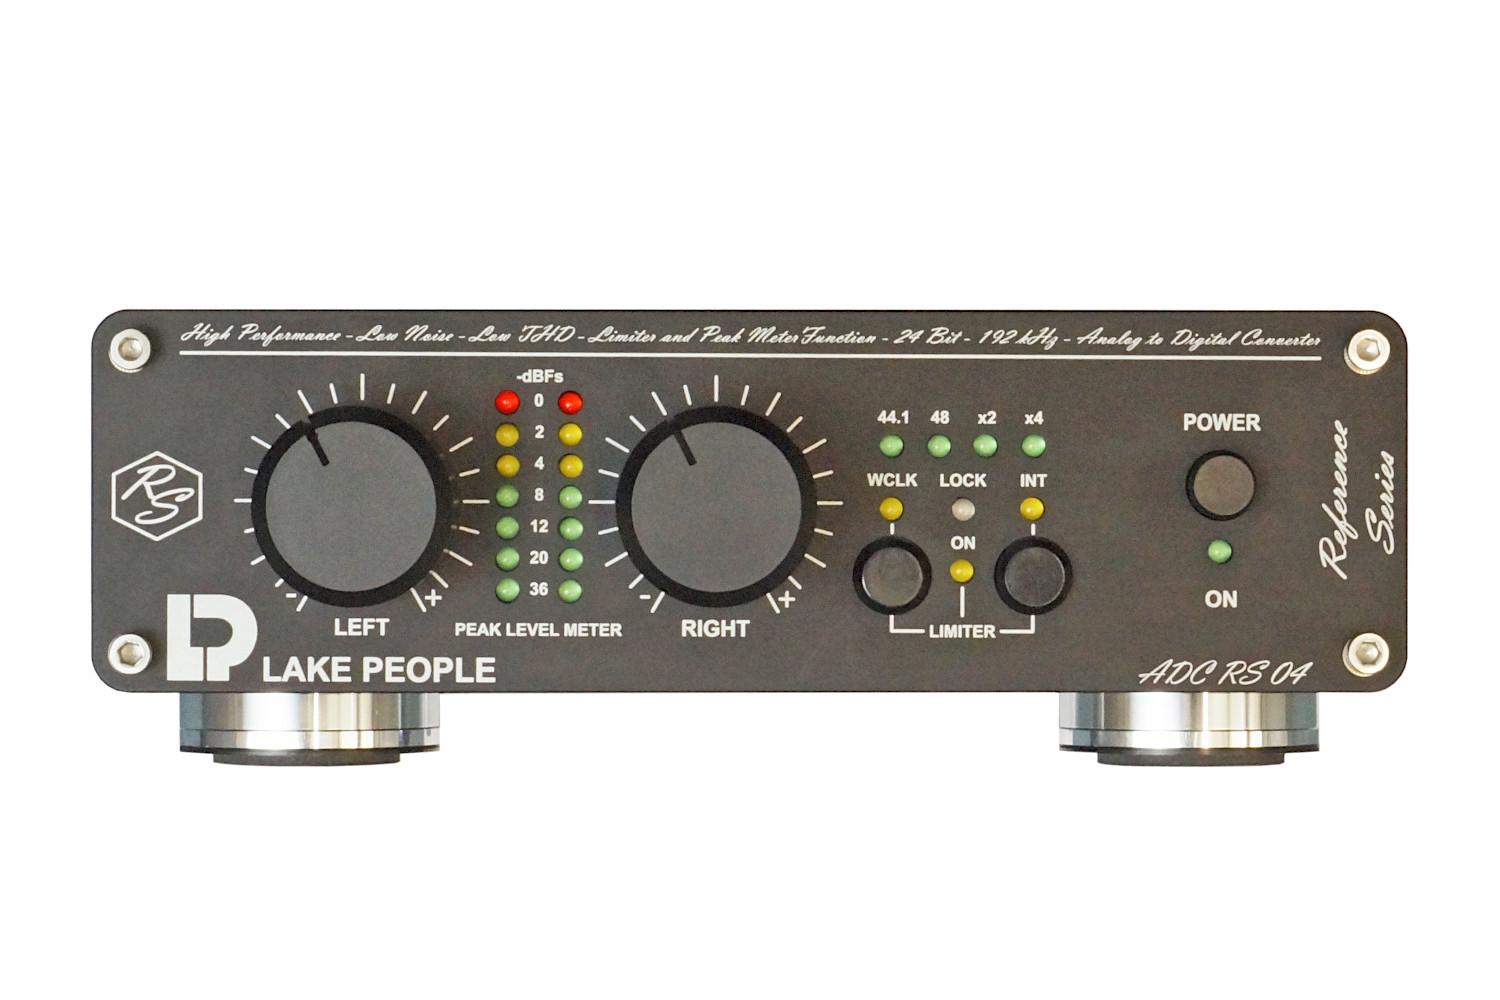 Lake People ADC RS 04 Analog Digital Converter